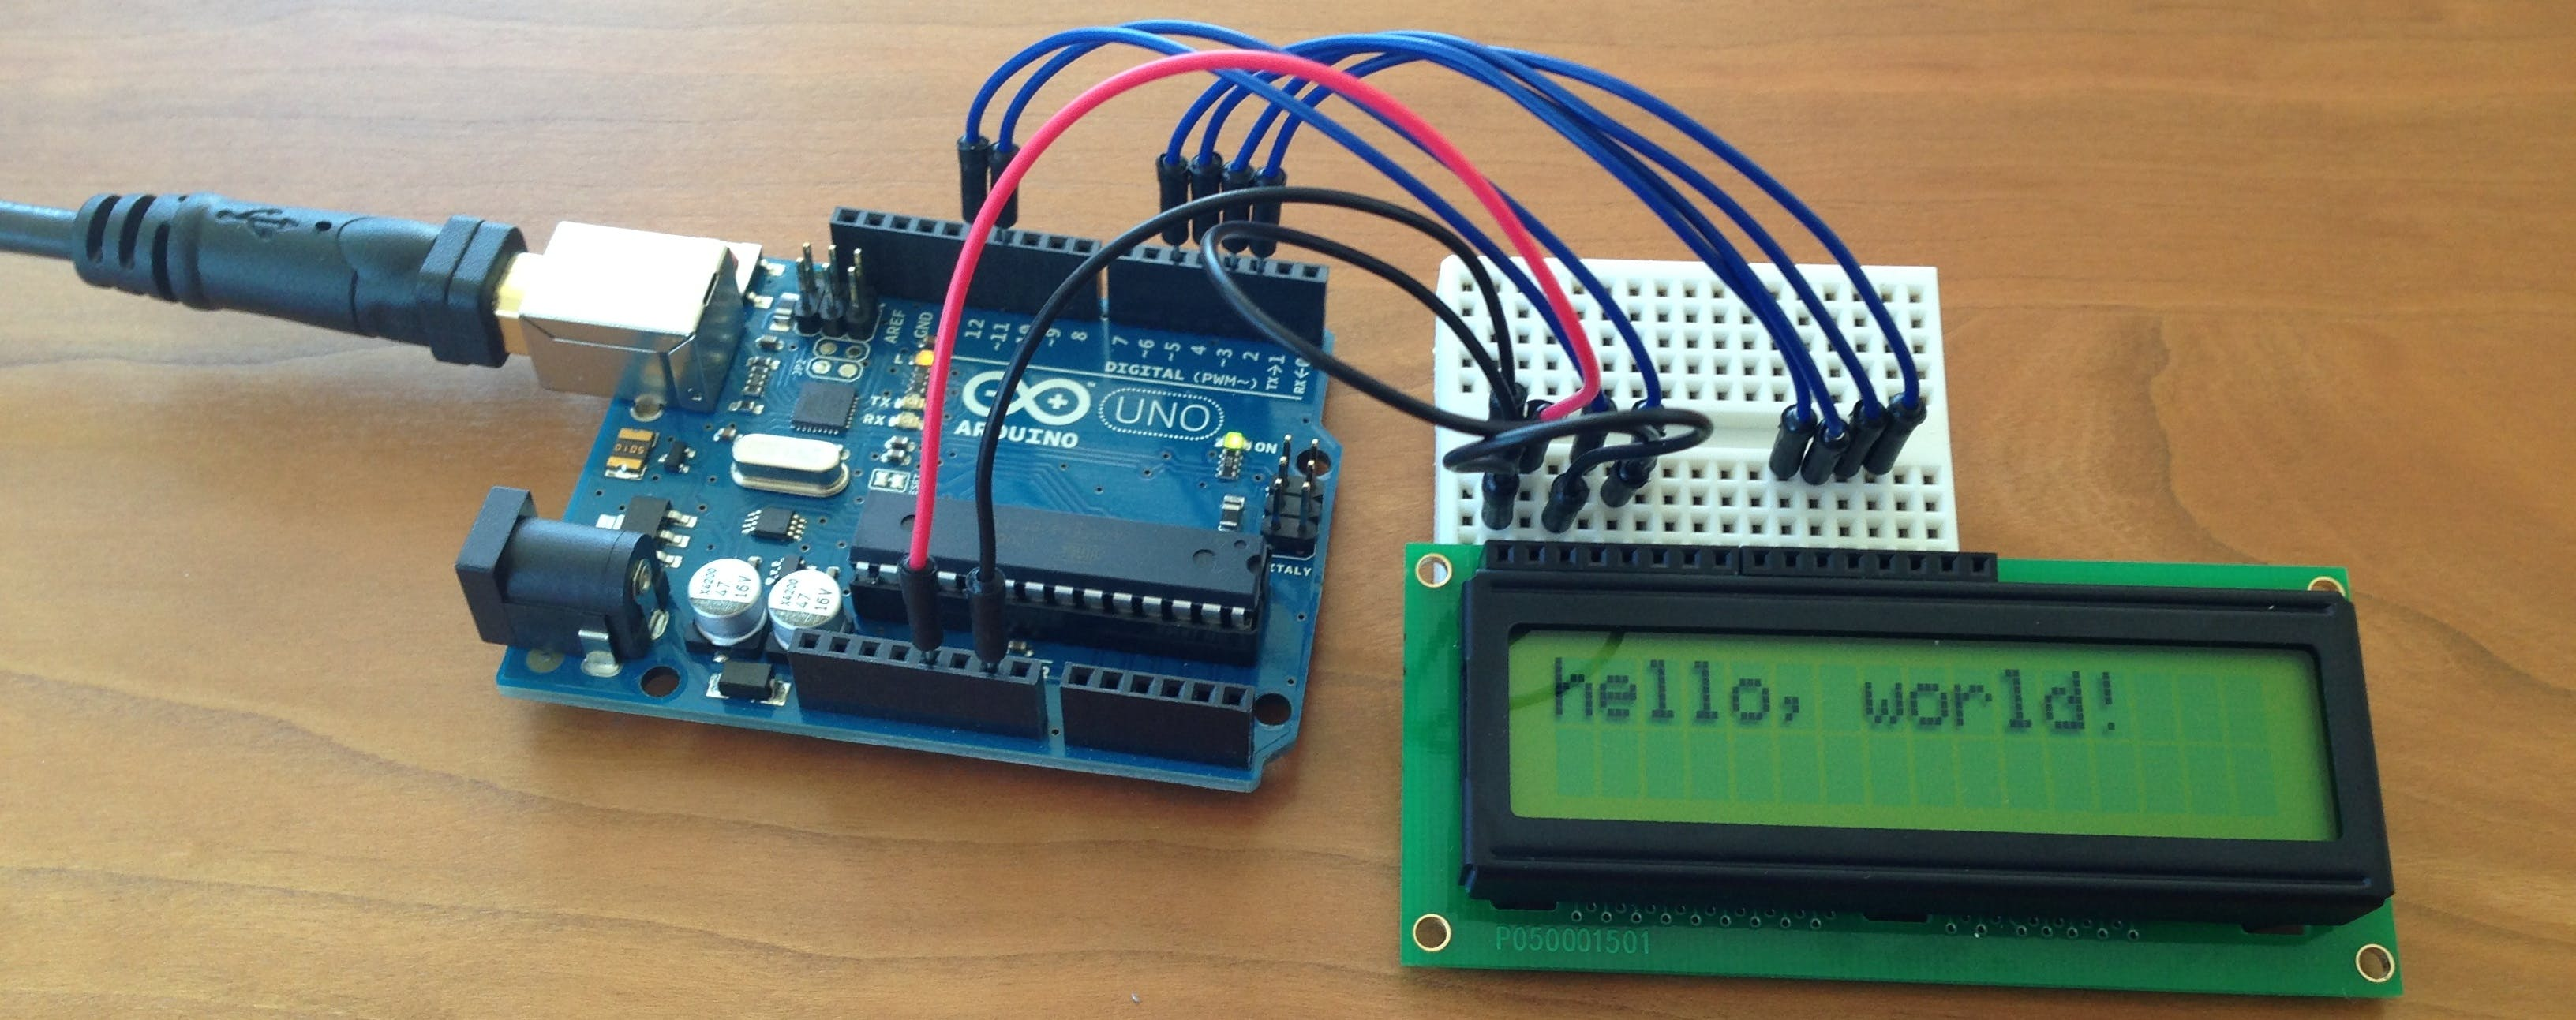 Lcd Display in Real Time.